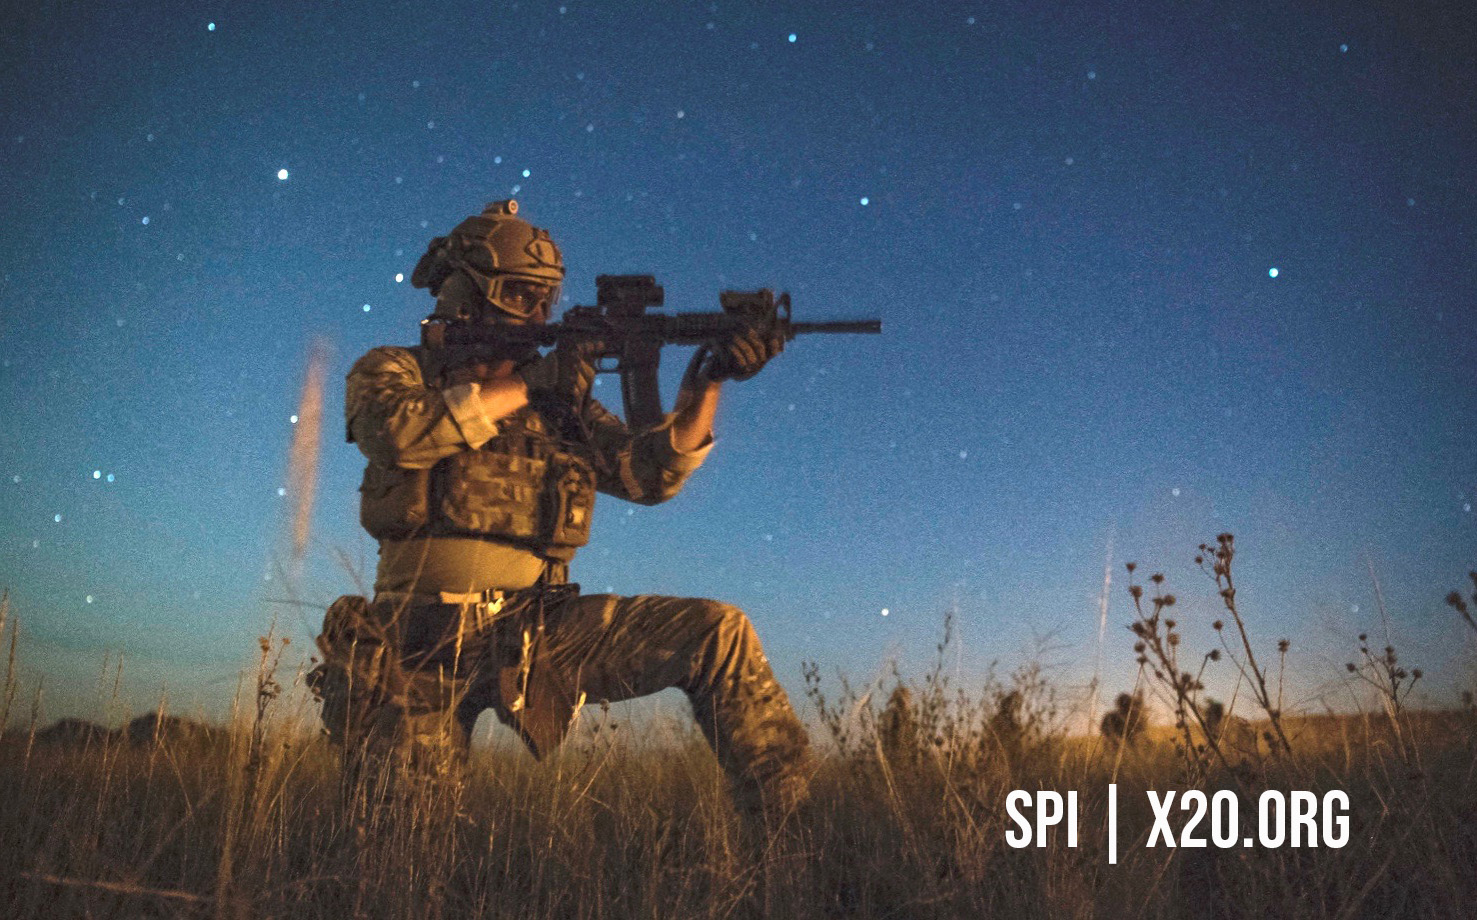 Thermal night vision scopes